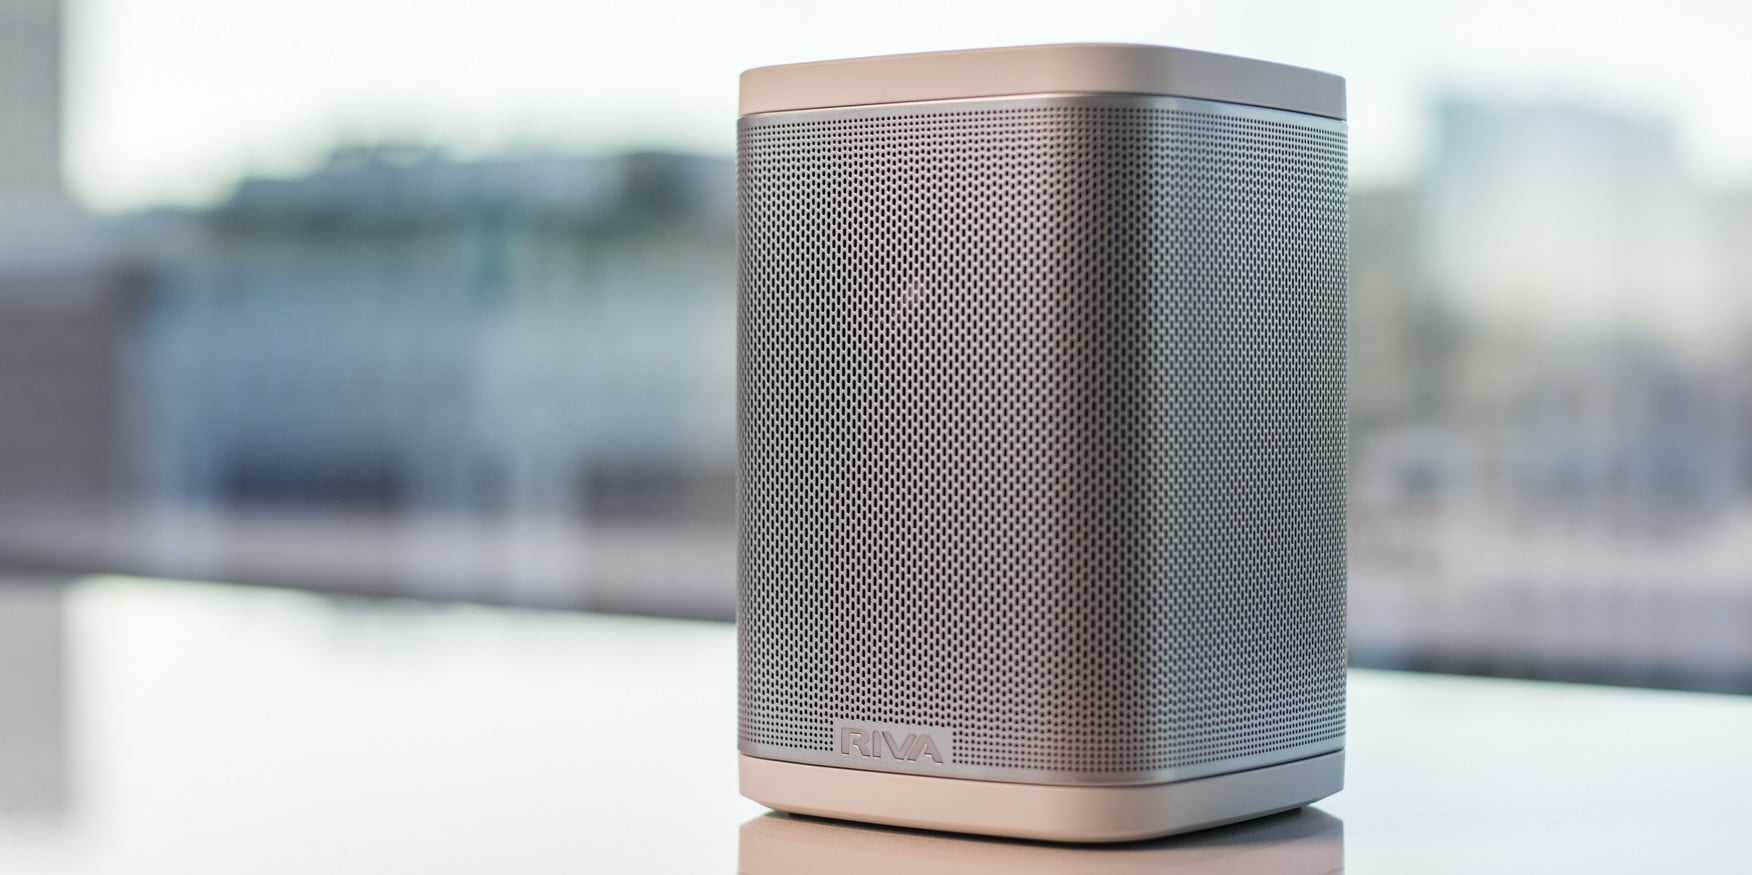 Step aside, Sonos: Riva's Concert is the best smart speaker you can buy